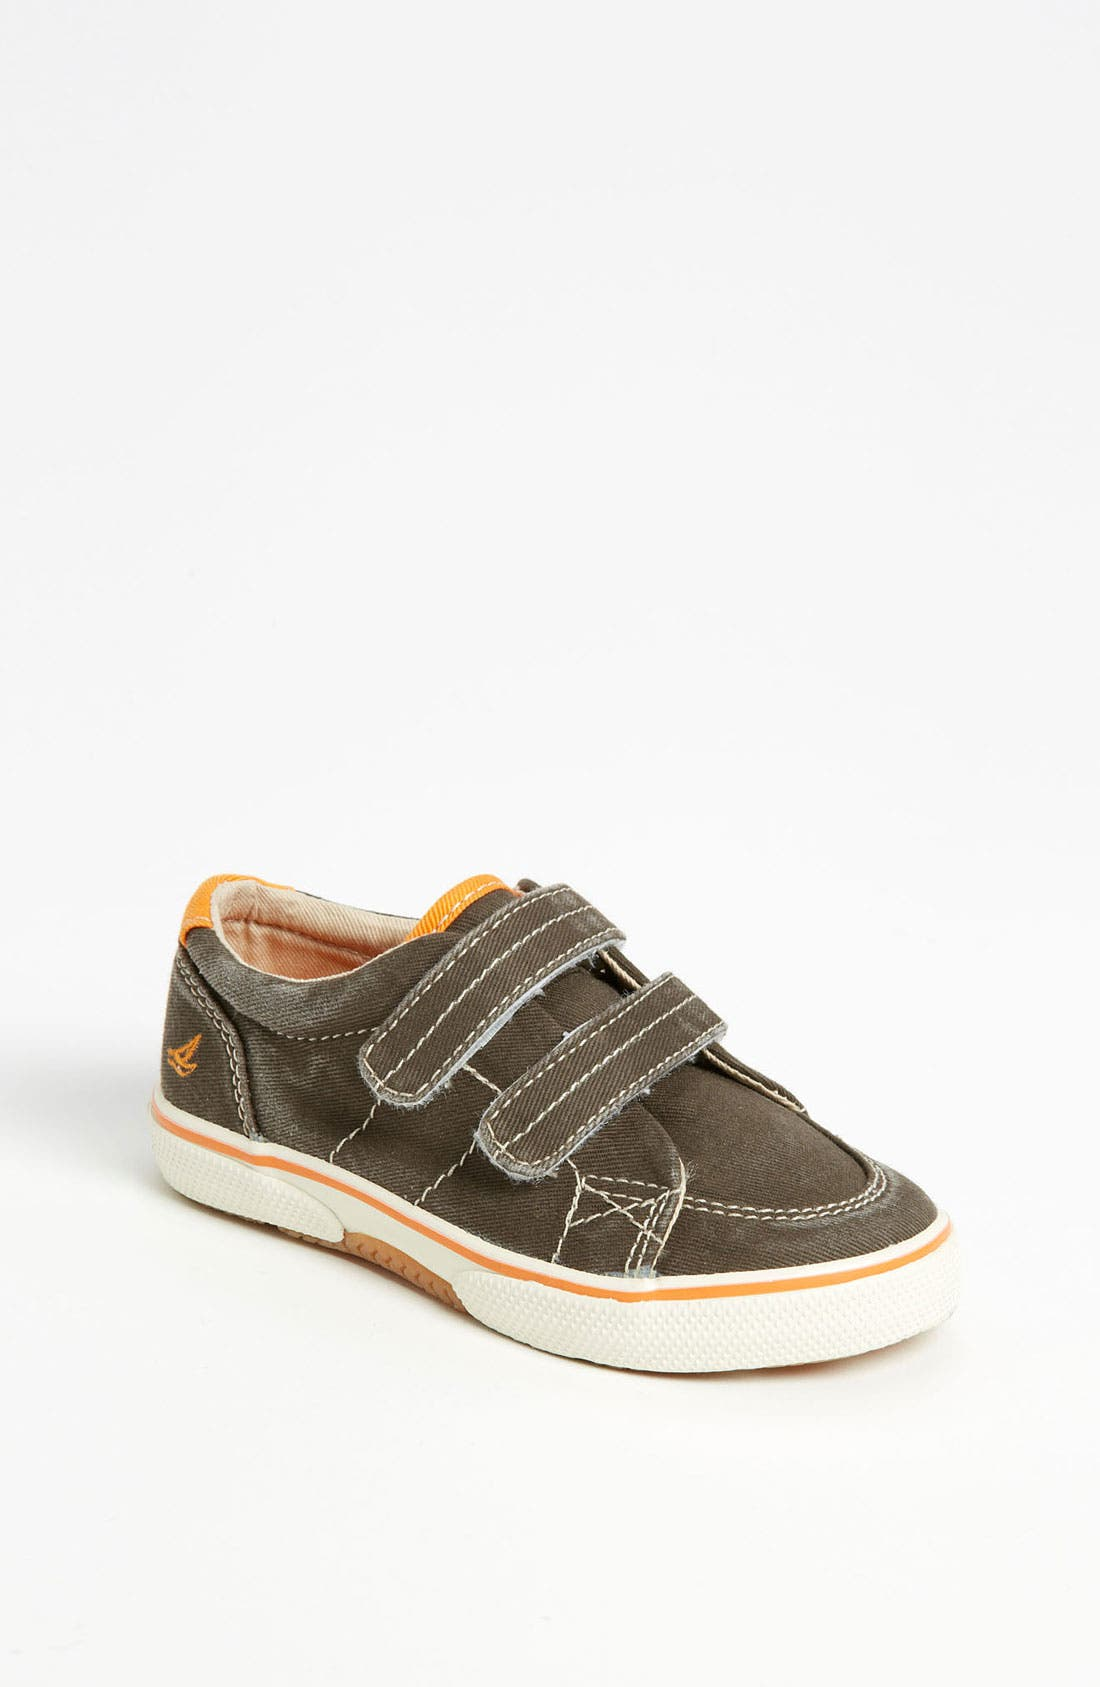 Alternate Image 1 Selected - Sperry Top-Sider® Kids 'Halyard' Sneaker (Walker & Toddler)